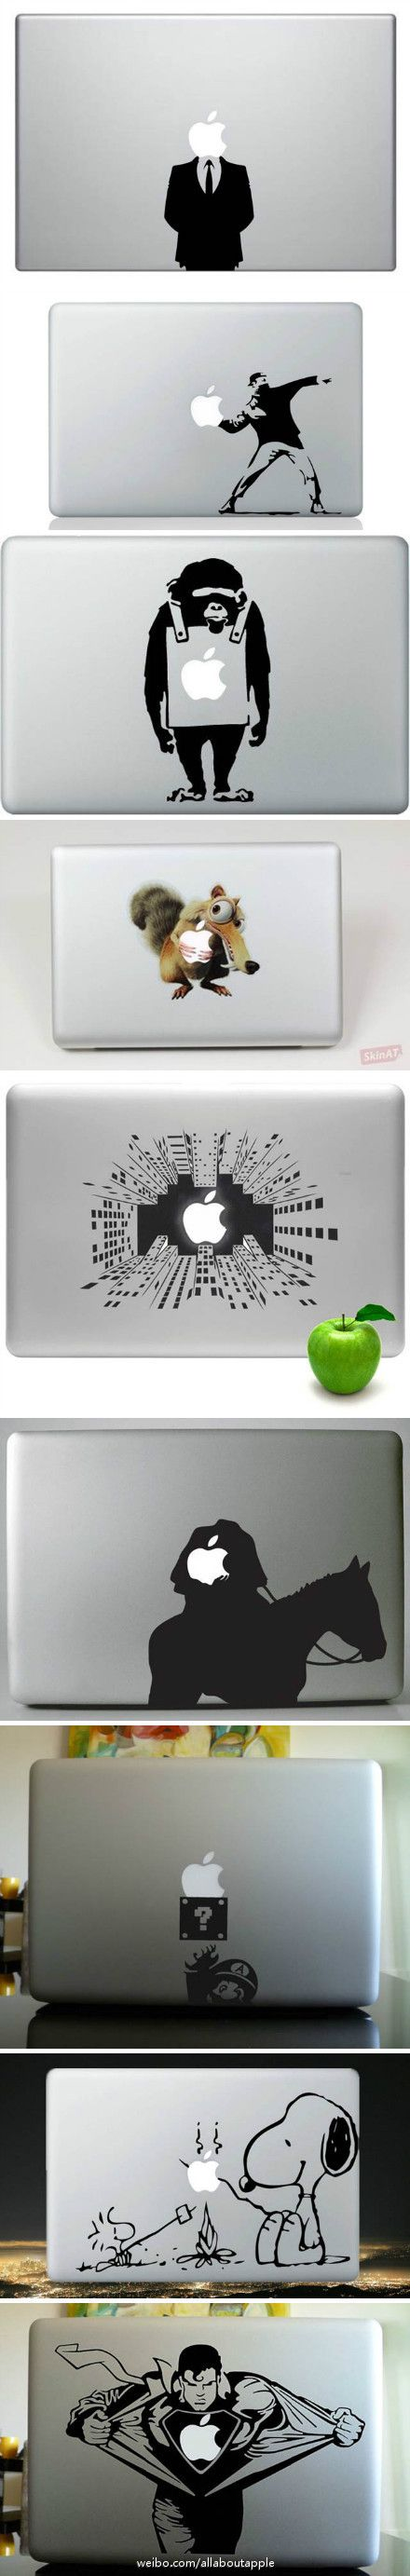 This compilation of MacBook stickers show the variety and creativity of the…